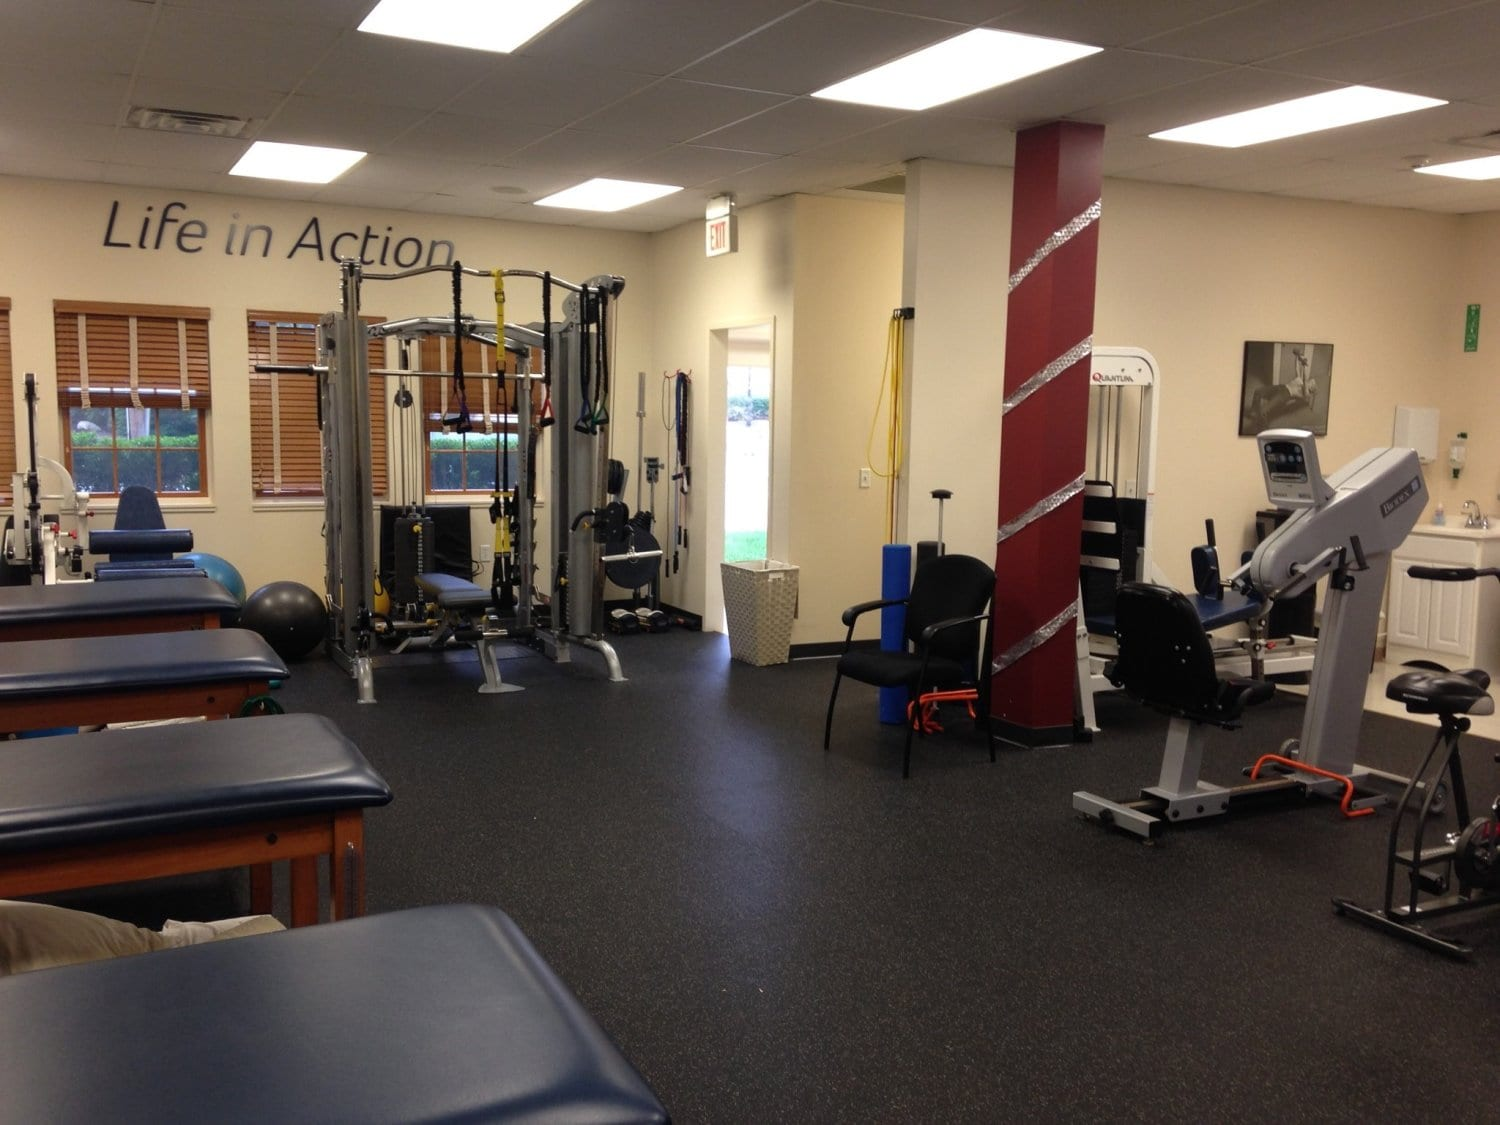 Wyckoff New Jersey physical therapy clinic interior photo with equipment.